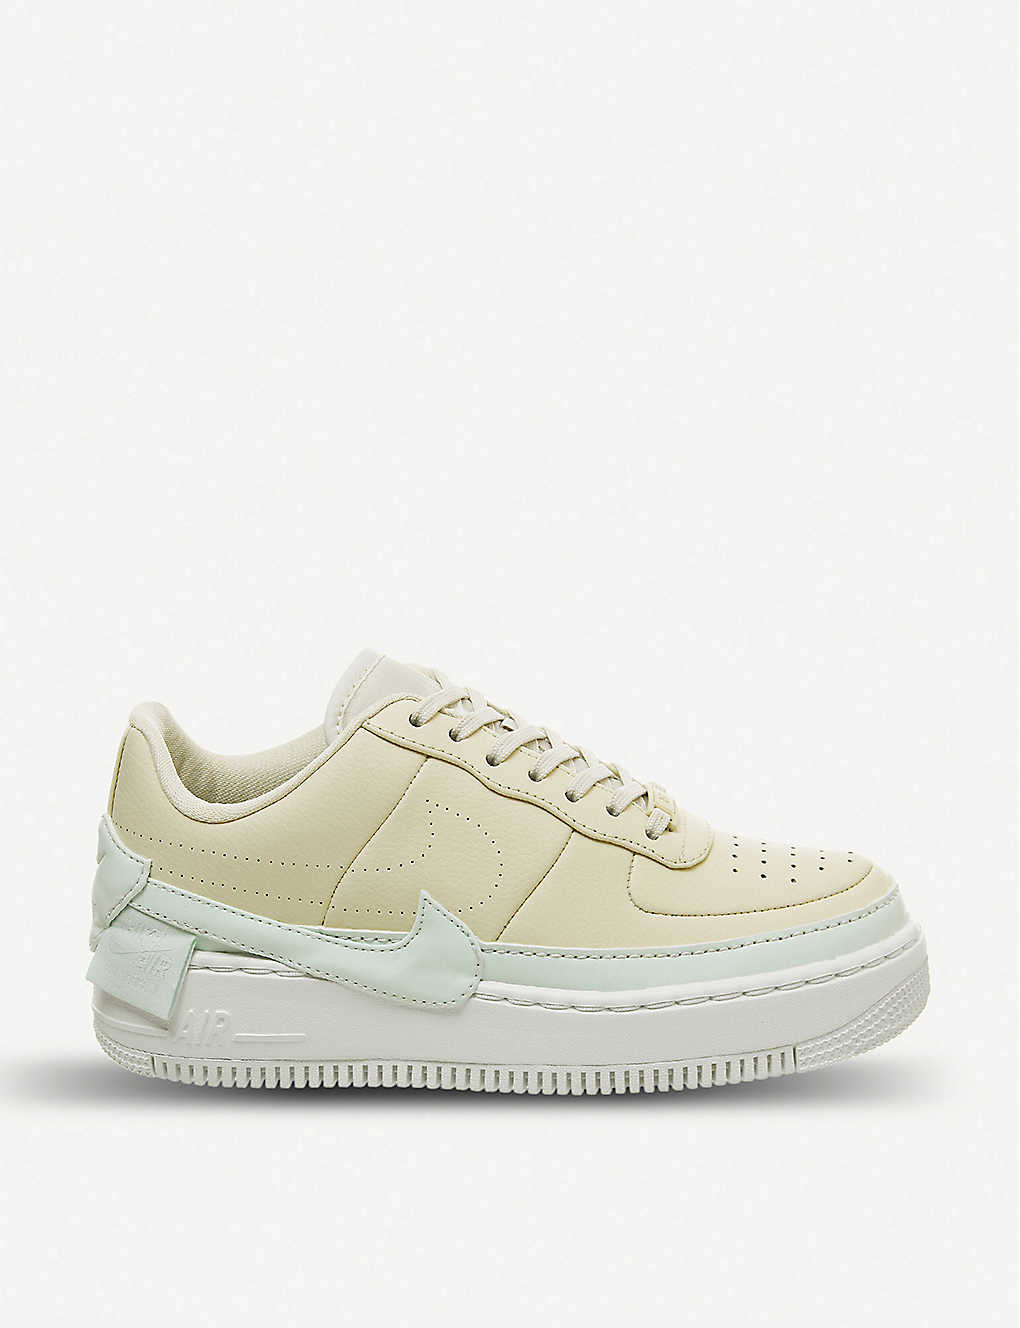 best website f7696 1788d Air Force 1 Jester XX leather trainers - Light cream ghost ...